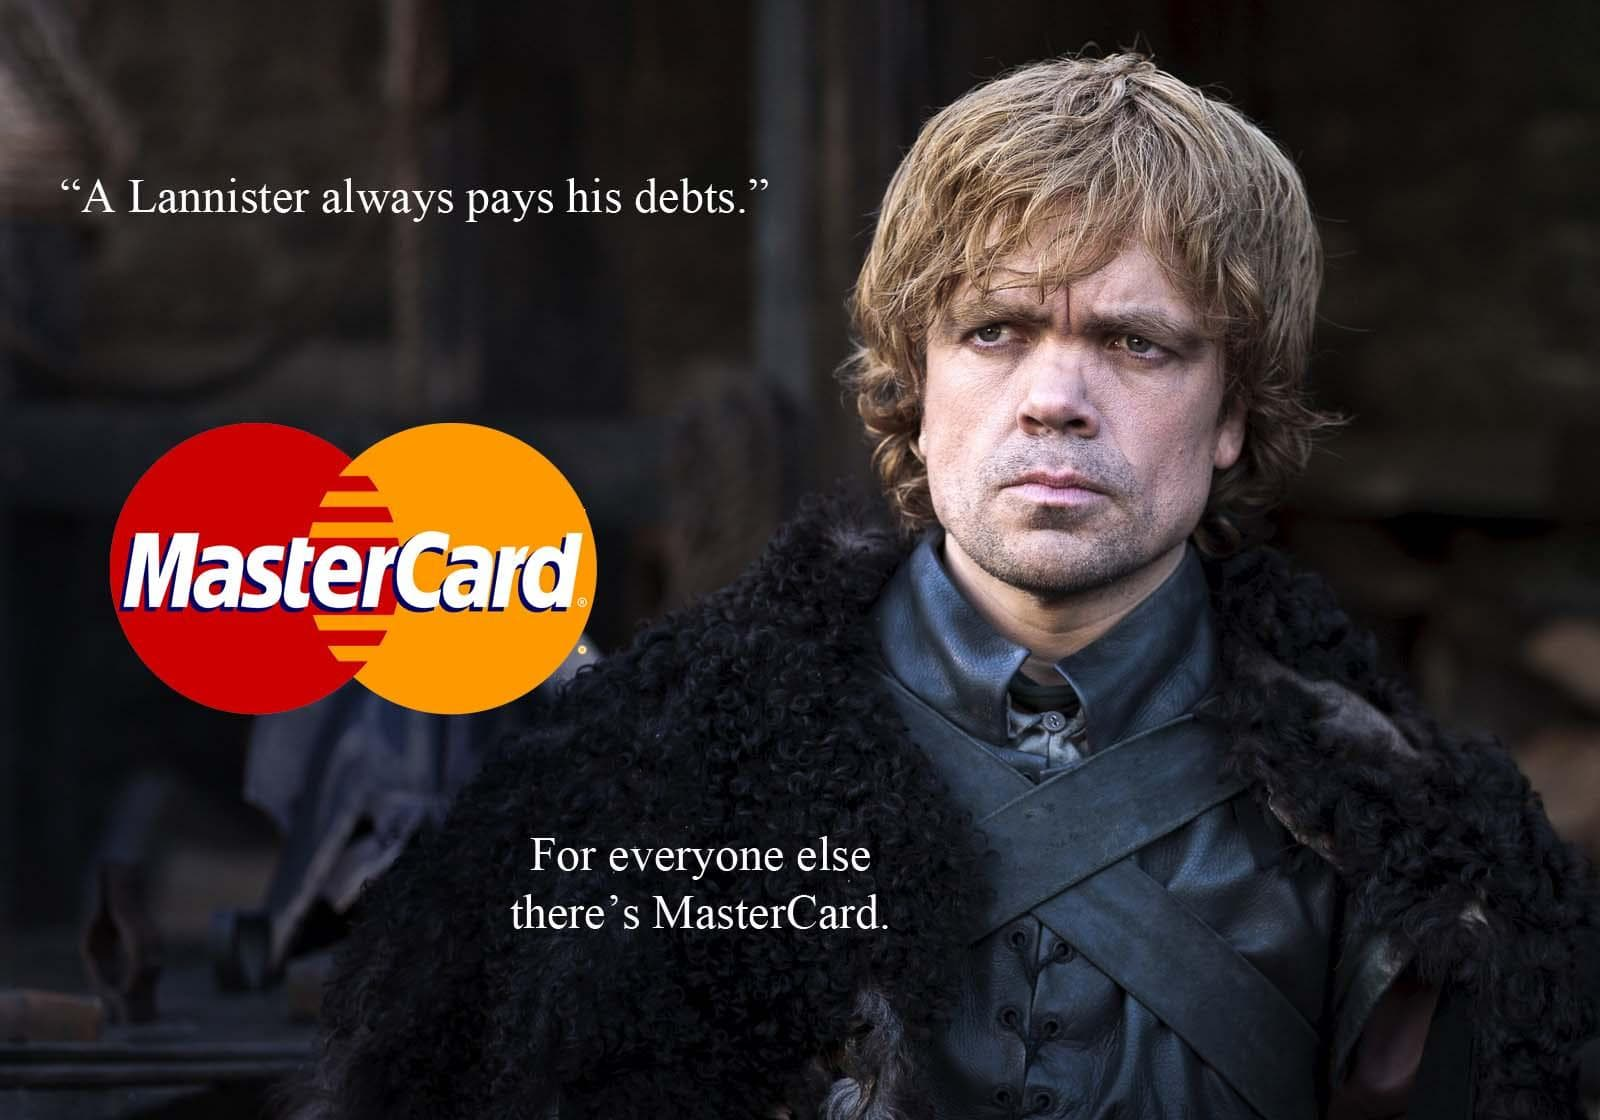 Funny Meme Game Of Thrones : Game of thrones funny meme mix youtube